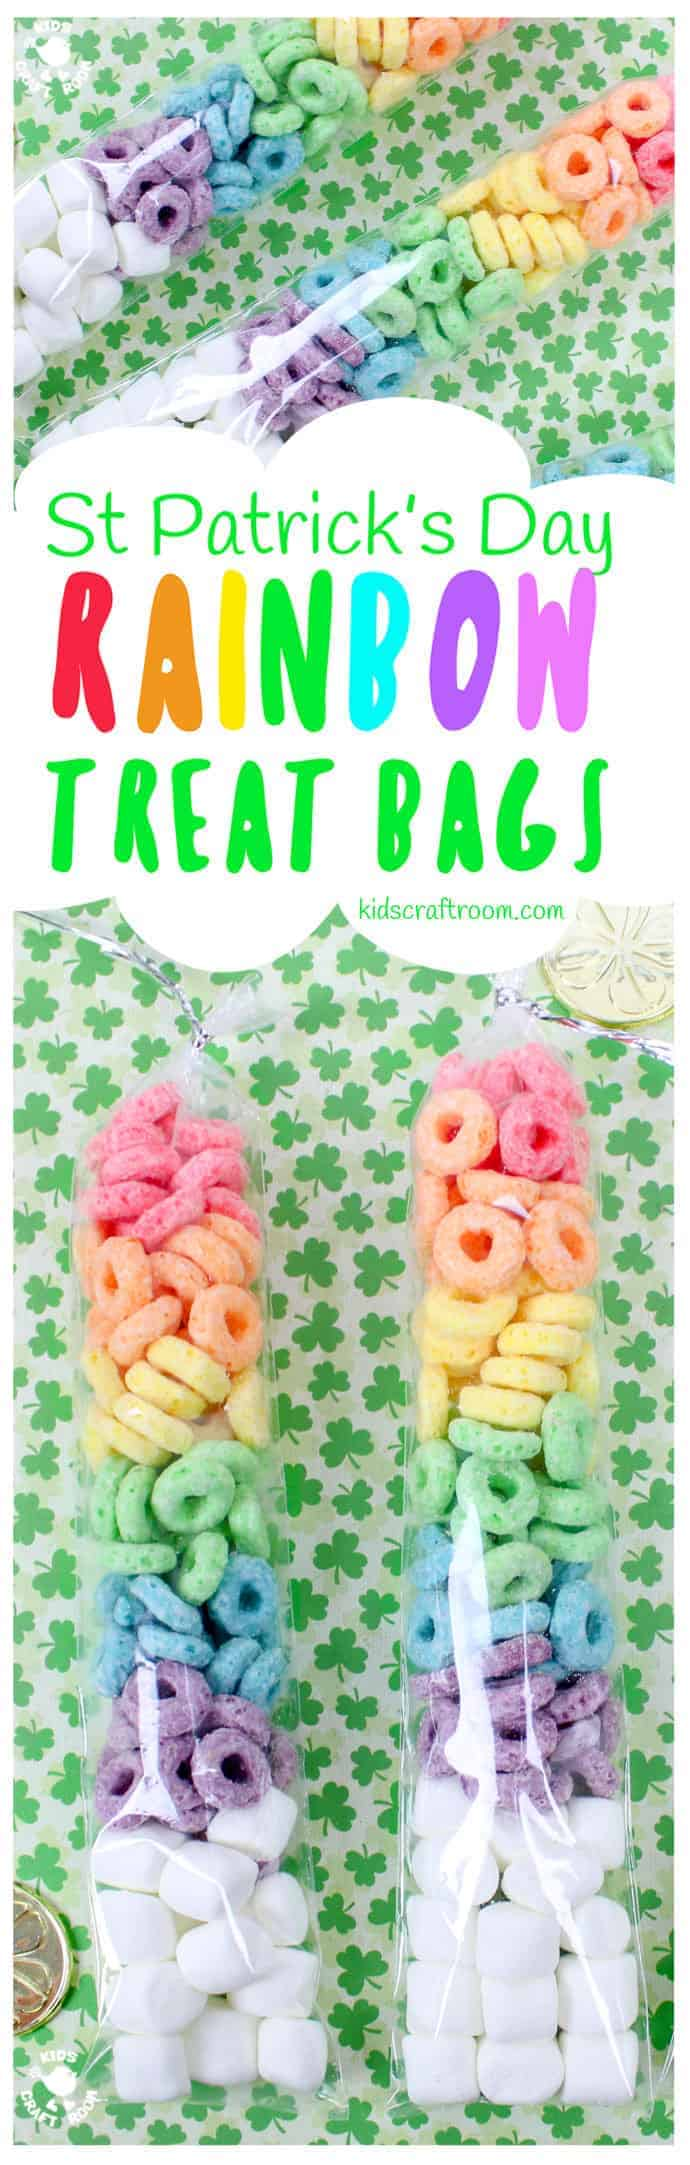 ST PATRICK'S DAY RAINBOW TREAT BAGS - need a quick and easy rainbow activity for the kids? These St Patrick's Day Rainbow Treat Bags are simple and fun to make and a lovely thrifty gift idea to share with friends too. Great if you need St Patrick's Day treats for a whole class and don't want to break the bank! #StPatricksDay #StPaddys #Rainbow #StPatricksDayCrafts #kidscrafts #rainbowcrafts #cookingwithkids #treats